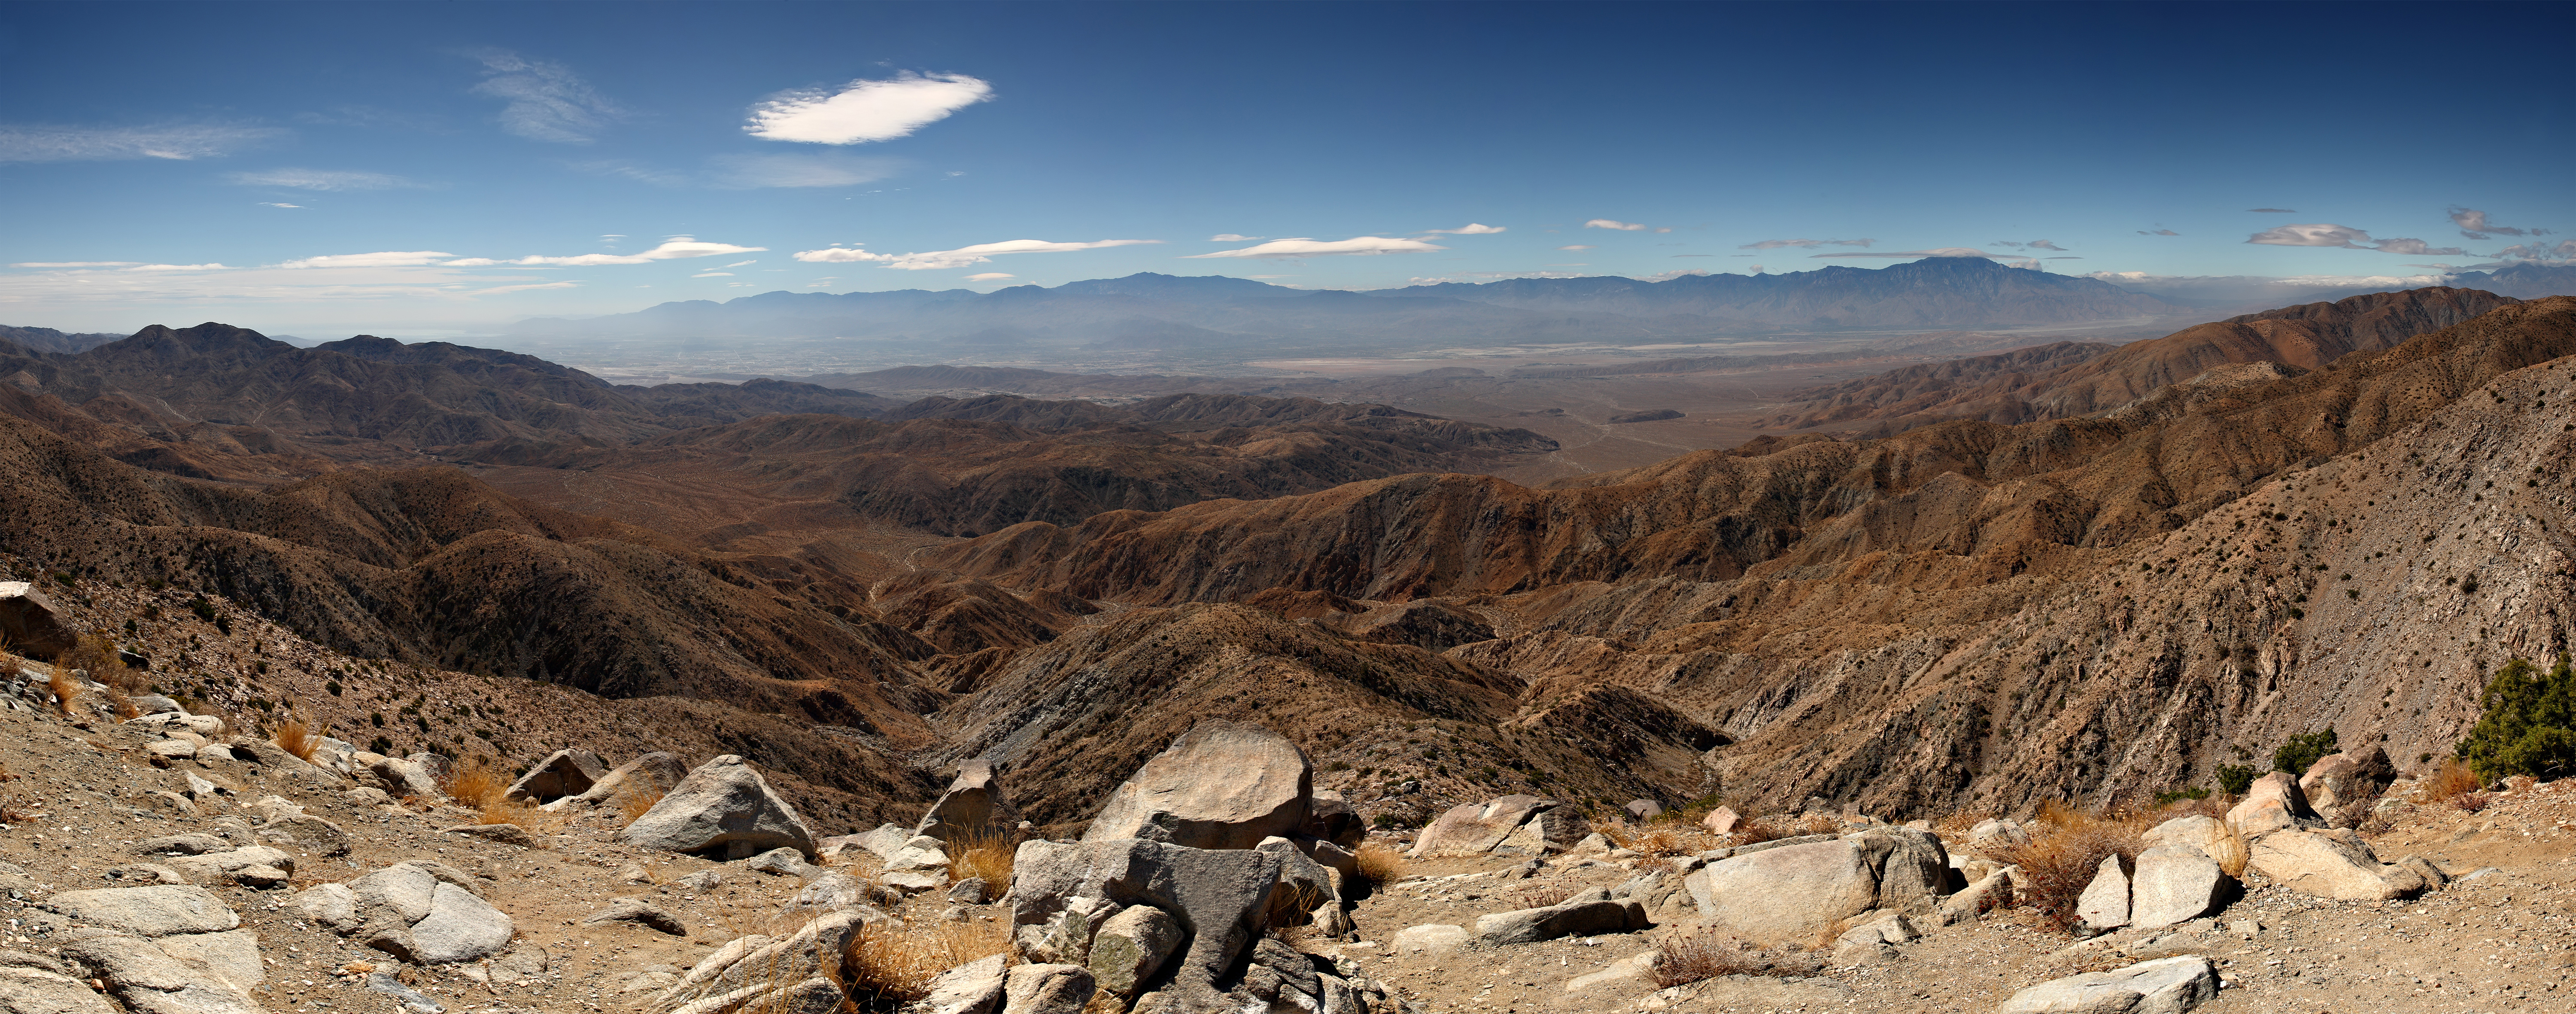 Data Mining in the Coachella Valley